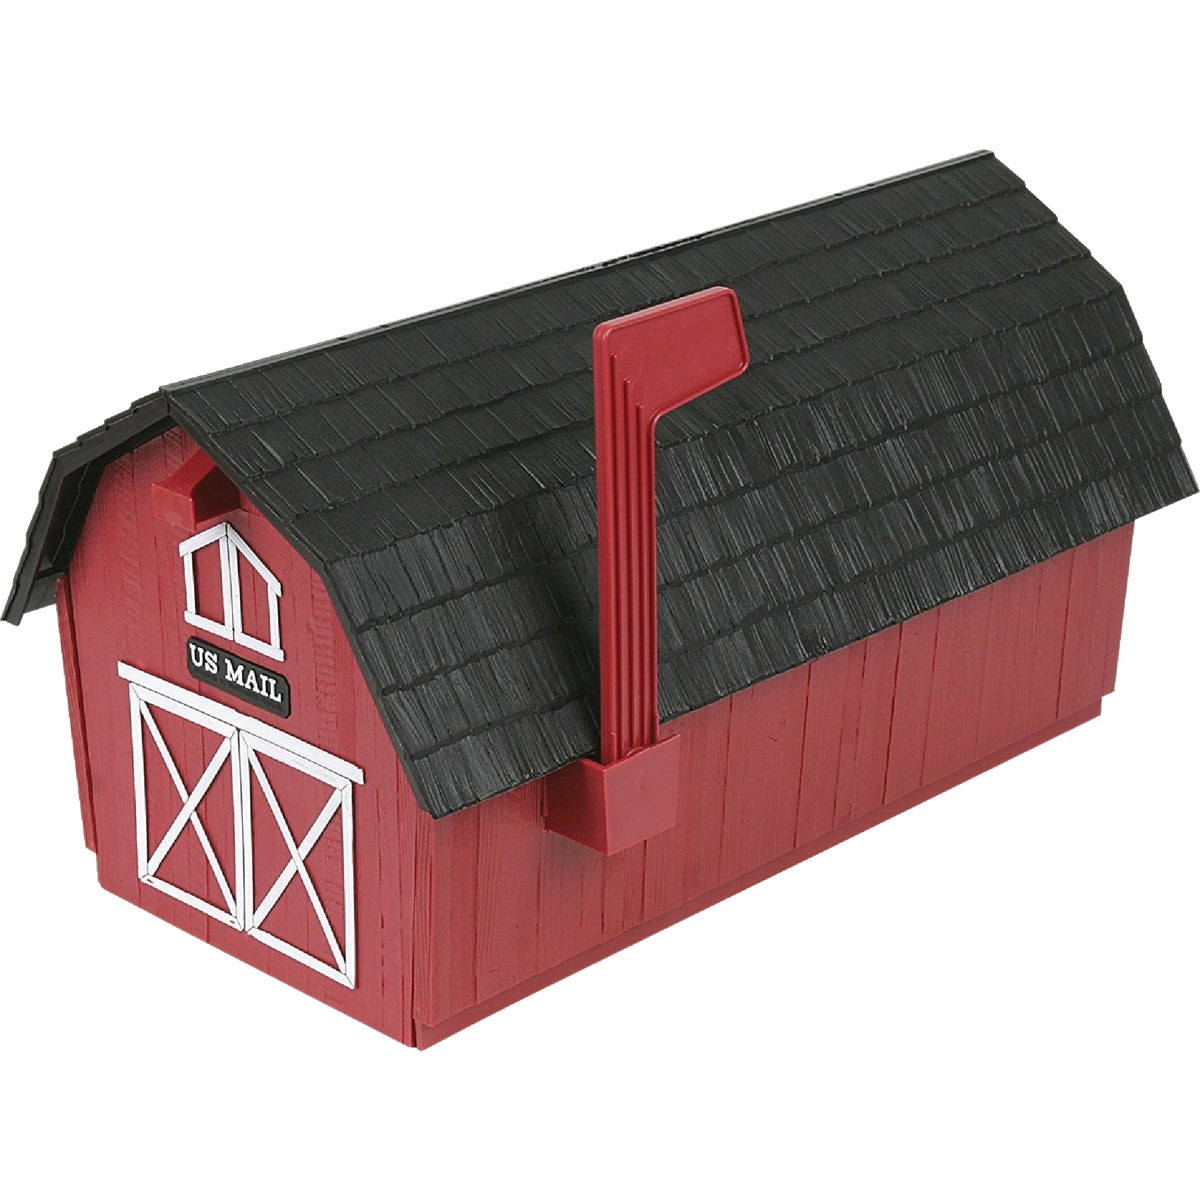 RED BARN POLY MAILBOX - T-1003 by Flambeau Products Co